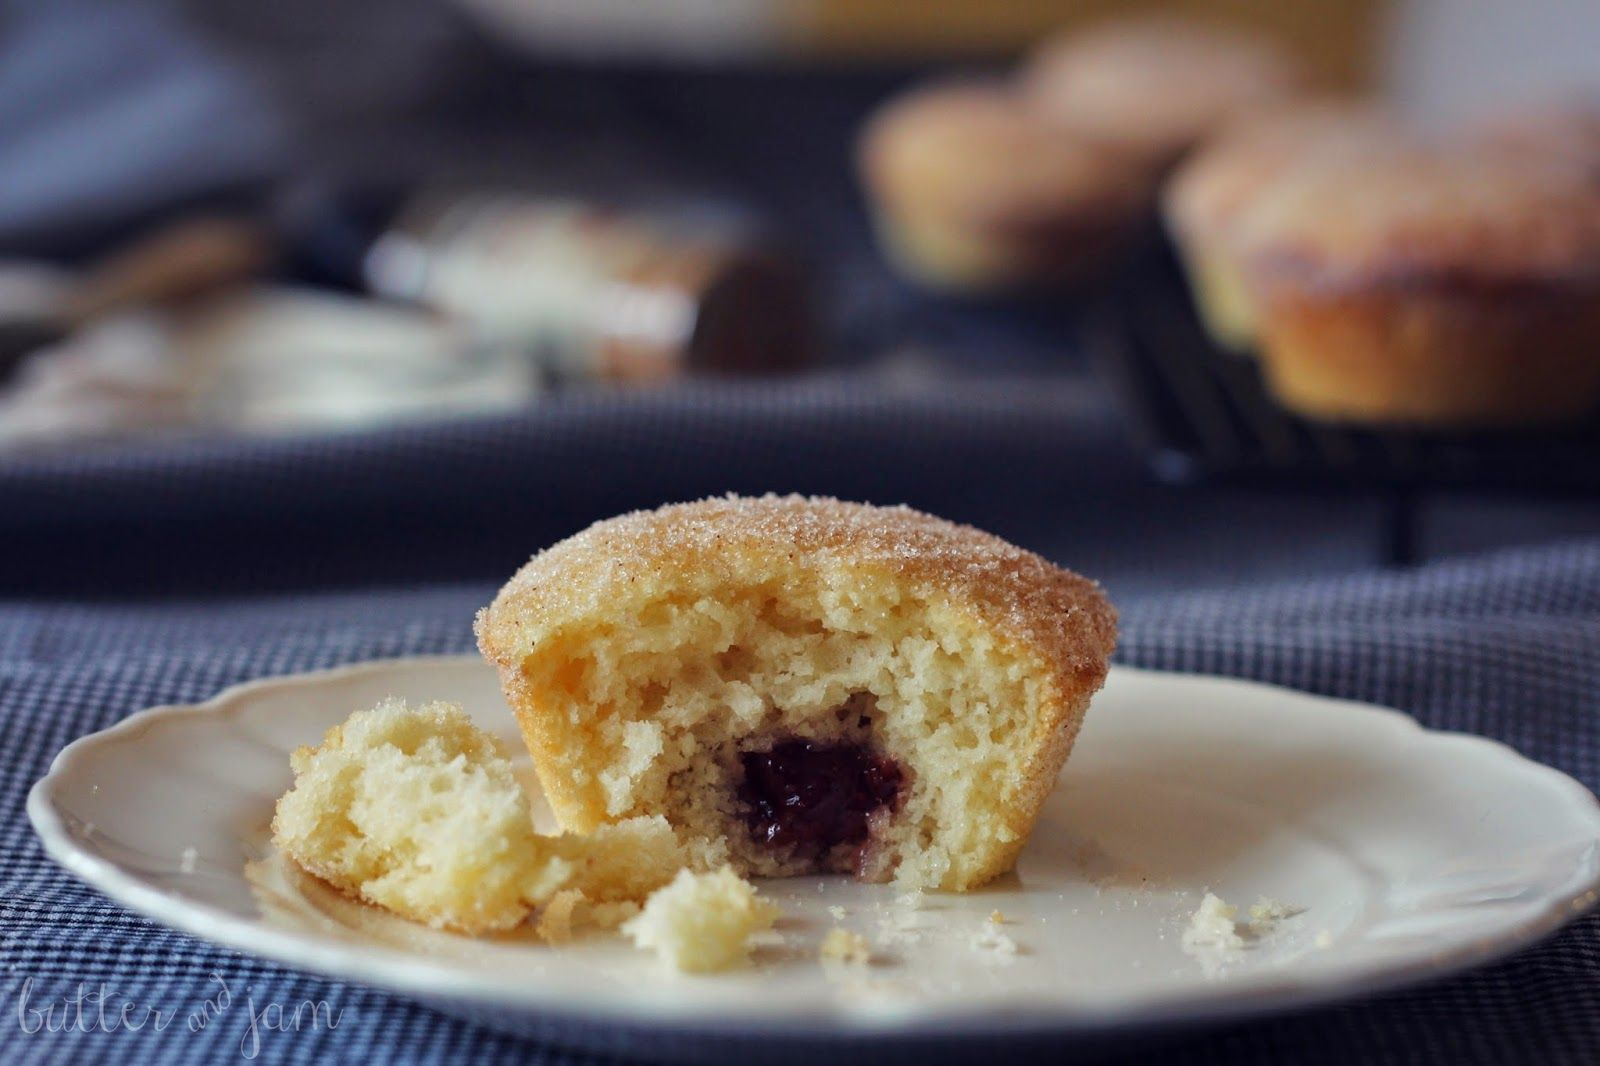 Jam Donut Muffins - just like the store-bought donuts, but in a homemade muffin form!